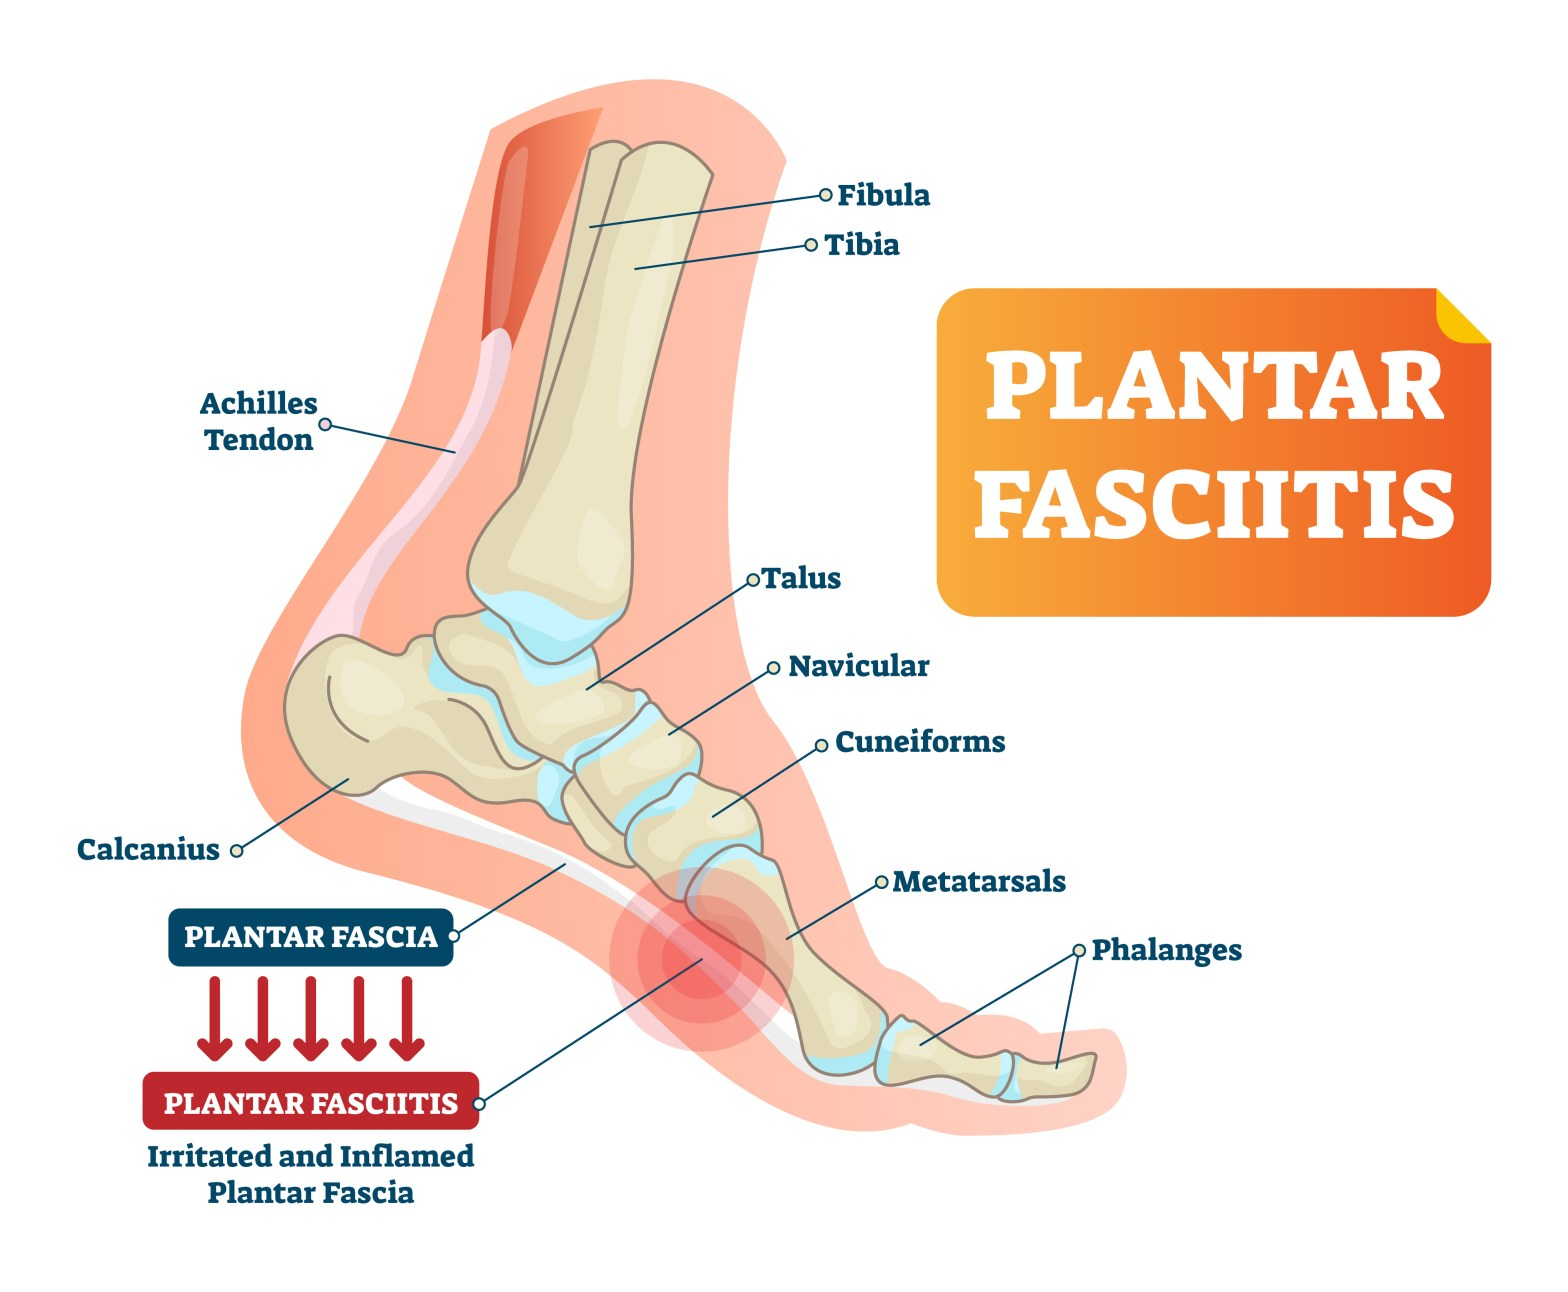 Image of Foot bones and location of Plantar Fasciitis